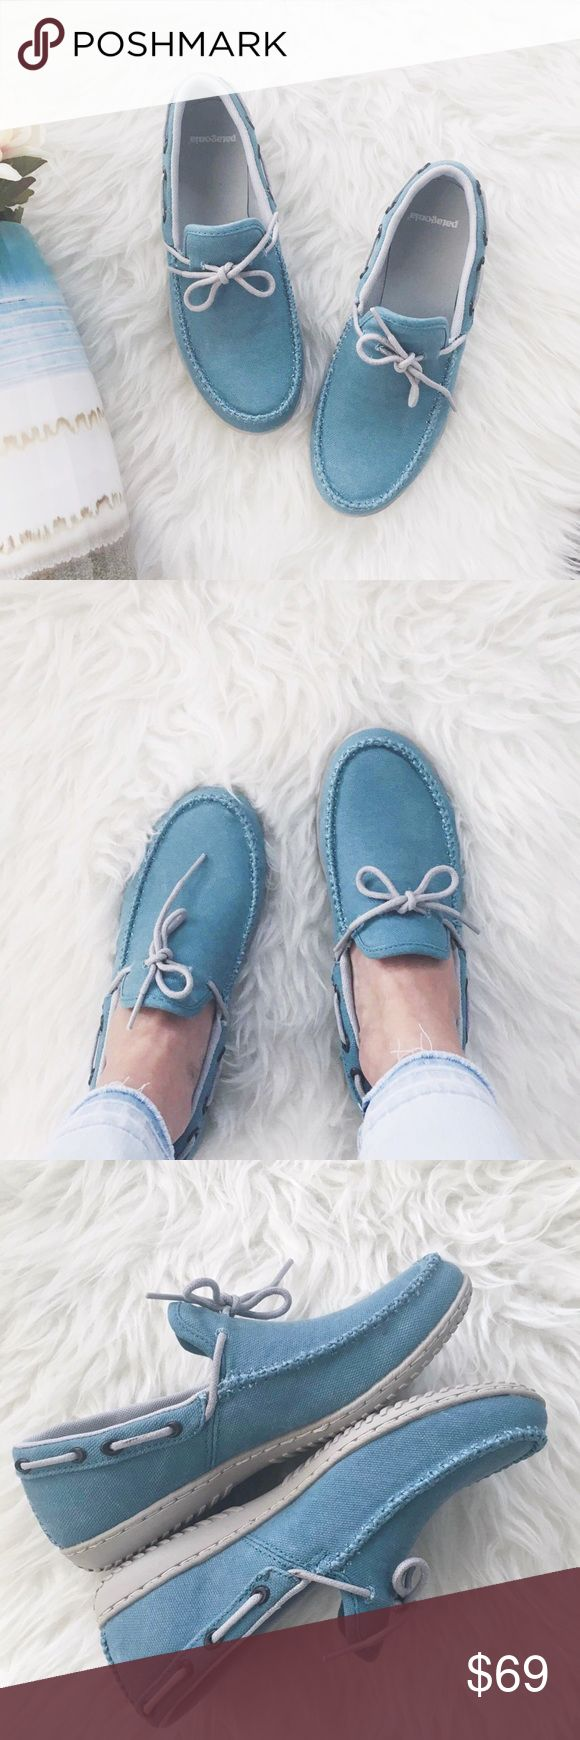 nwt//patagonia • vegan Kula Moc Canvas shoes 🛍: patagonia - SOLD OUT ONLINE ▫️kula moc canvas shoes ▫️tobago blue ▫️the Kula Moc Canvas is a vegan-friendly casual moccasin w/durable canvas upper and breathable mesh lining. It has latex footbed w/mesh lining for comfort. ▫️size: 6 US; 37 EUR ▫️condition: new in box with minor flaws (see last two photos) small black mark on one shoelace and another black mark near shoelace on other shoe - very unnoticeable. Price reflects. Box may have…